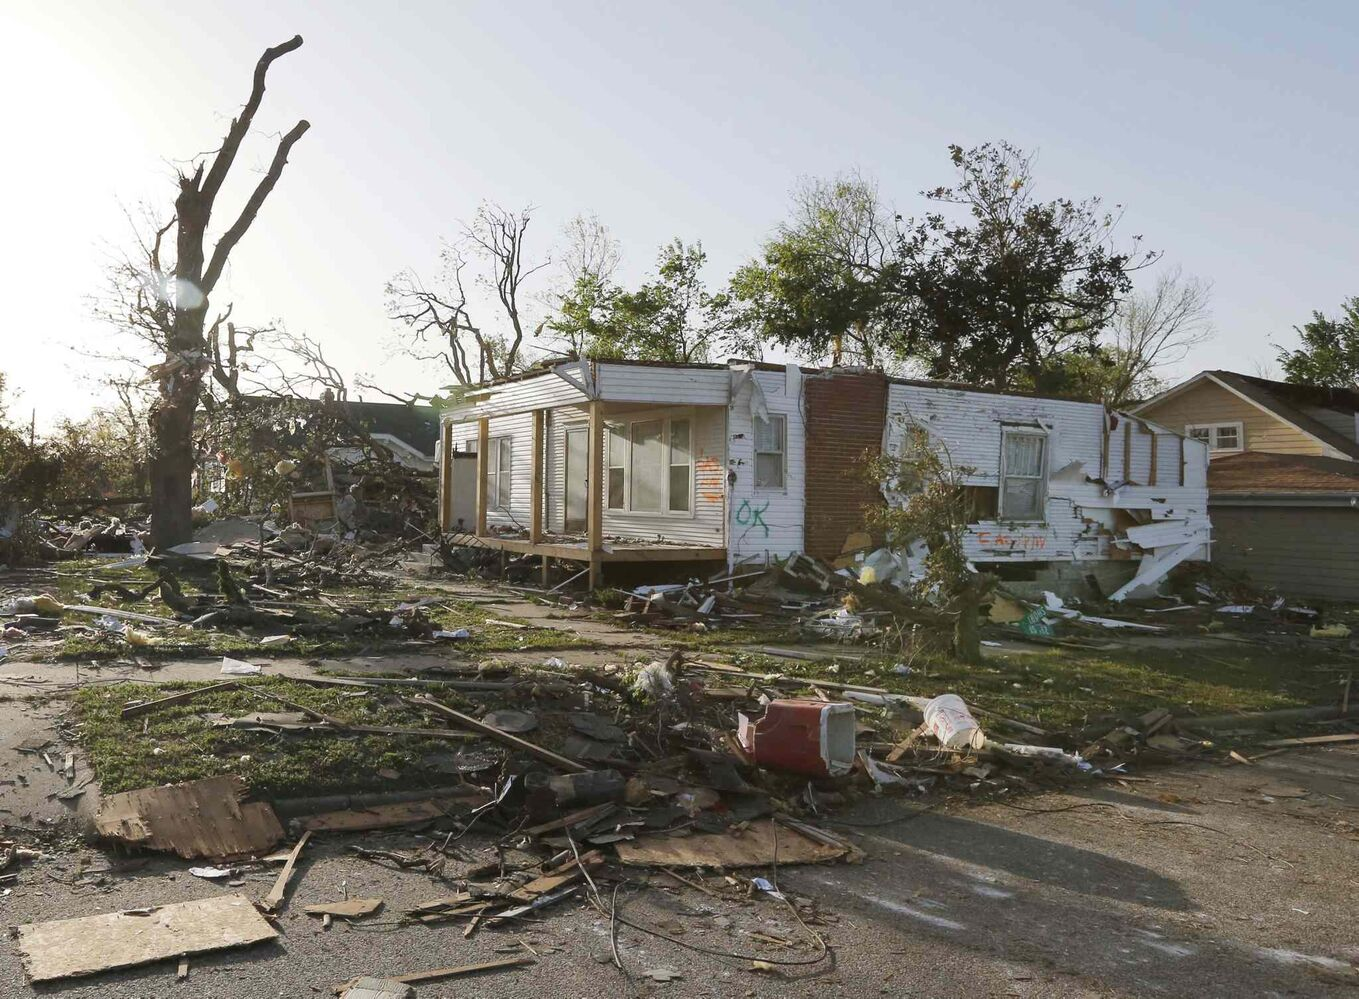 A home damaged by a tornado stands without a roof in Baxter Springs, Kan., Monday, April 28, 2014. (Orlin Wagner / The Associated Press)